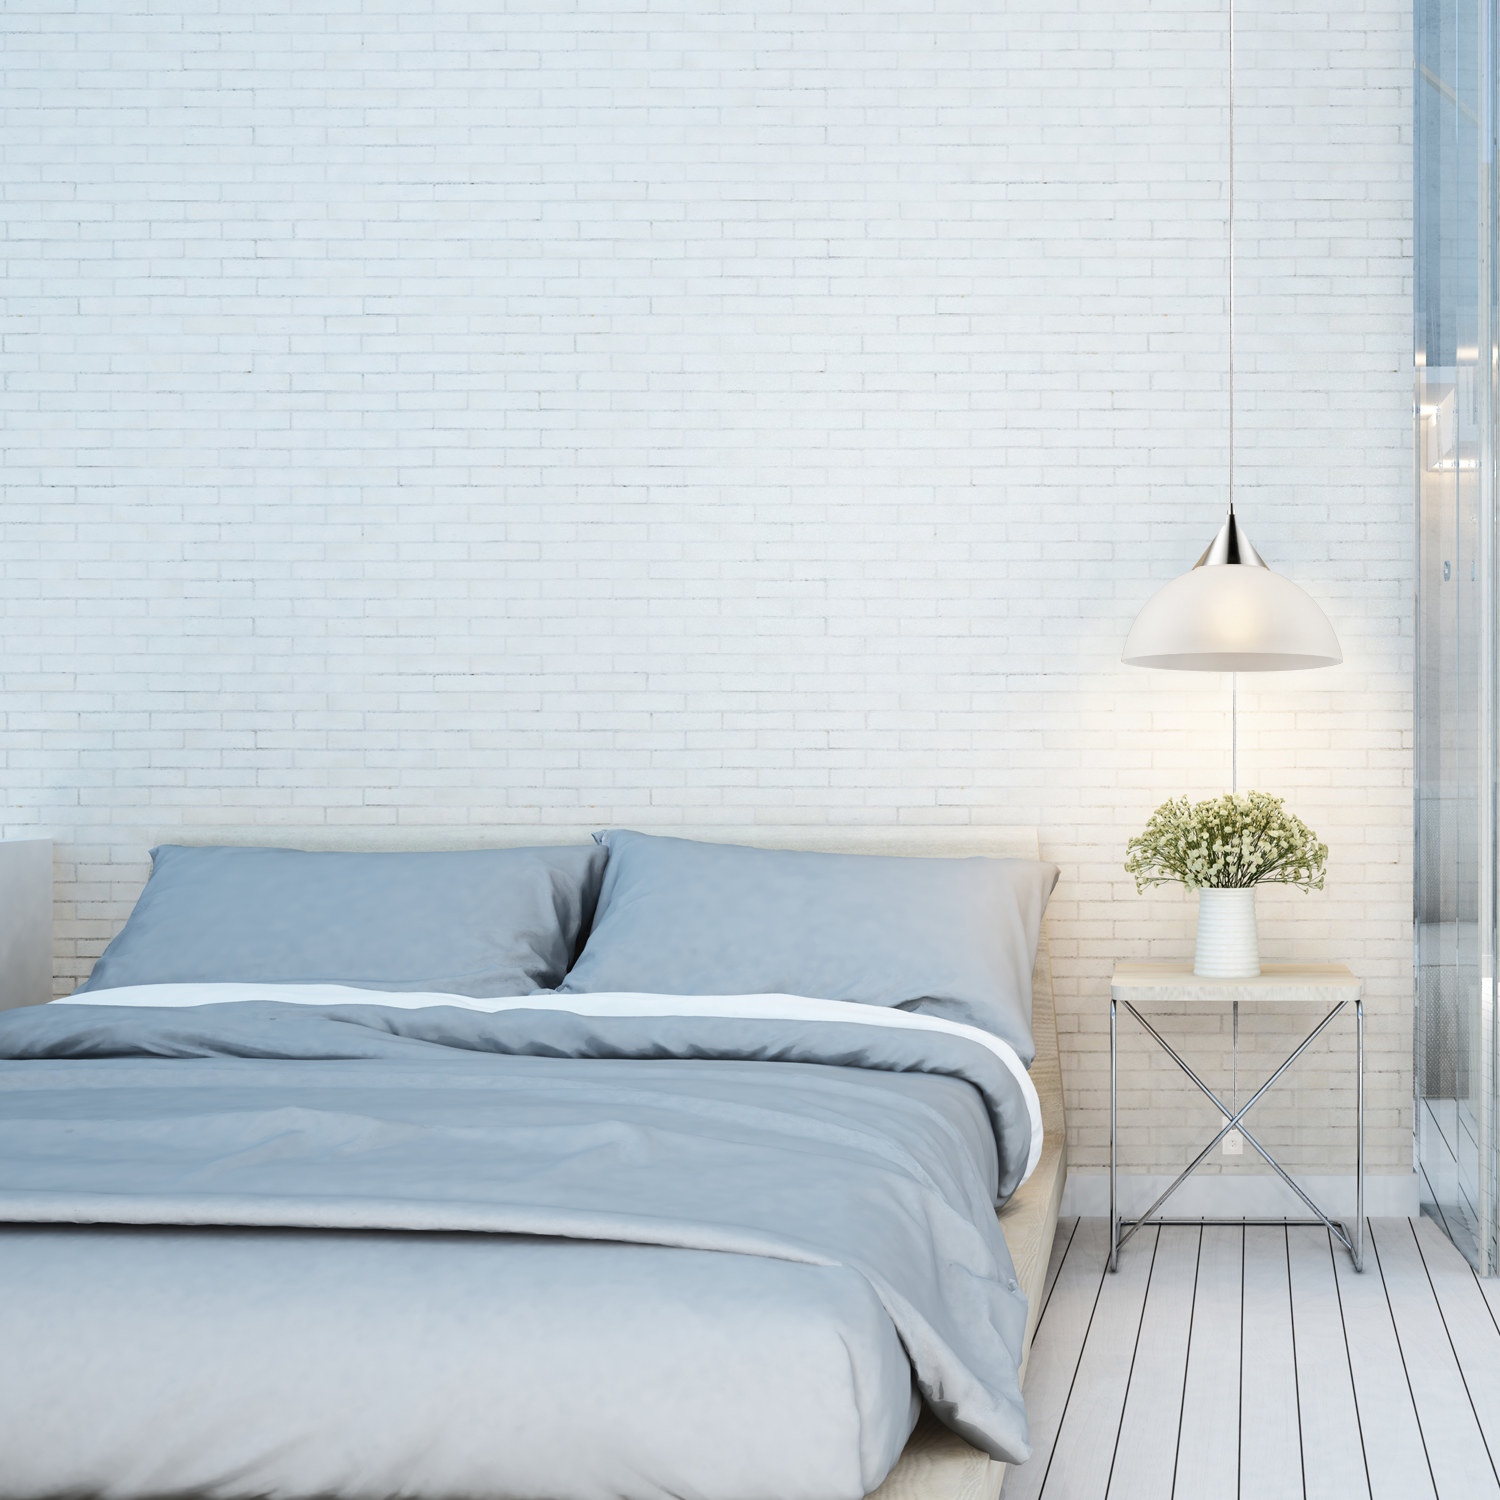 A pendant light in a bedroom